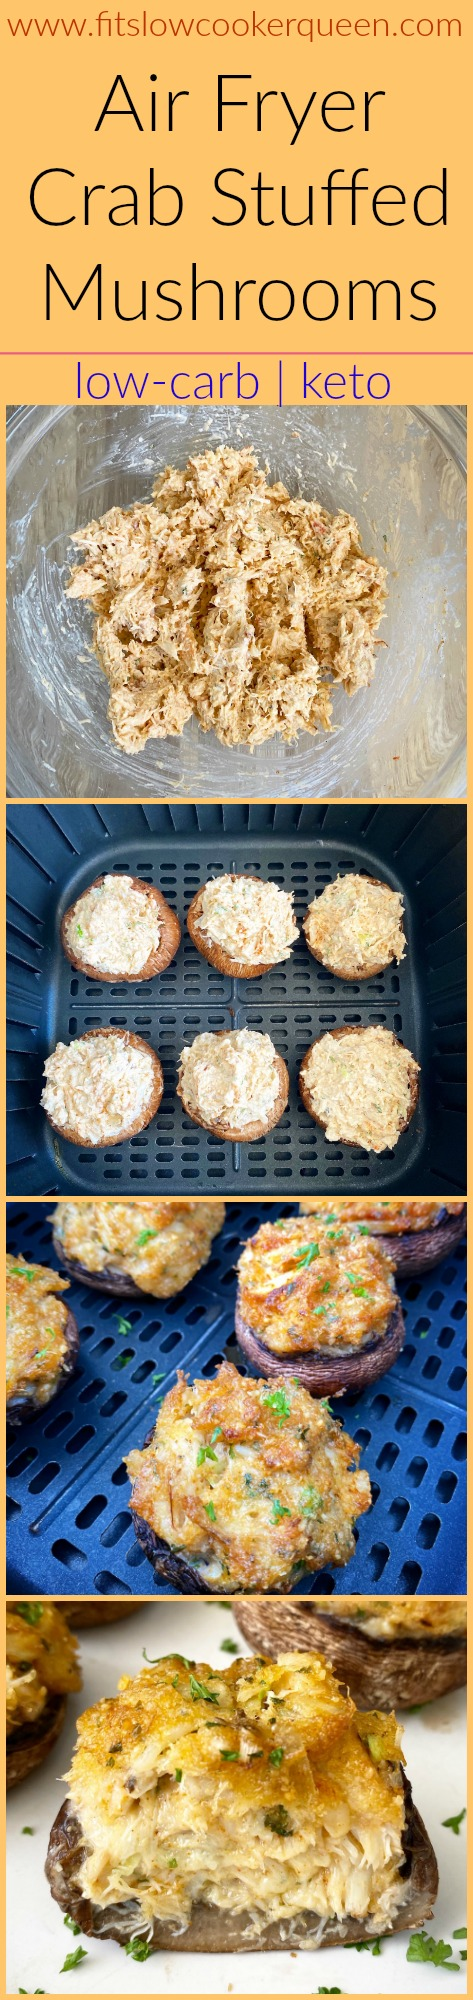 another pinterest pin for Air Fryer Crab Stuffed Mushrooms (Low-Carb, Keto)